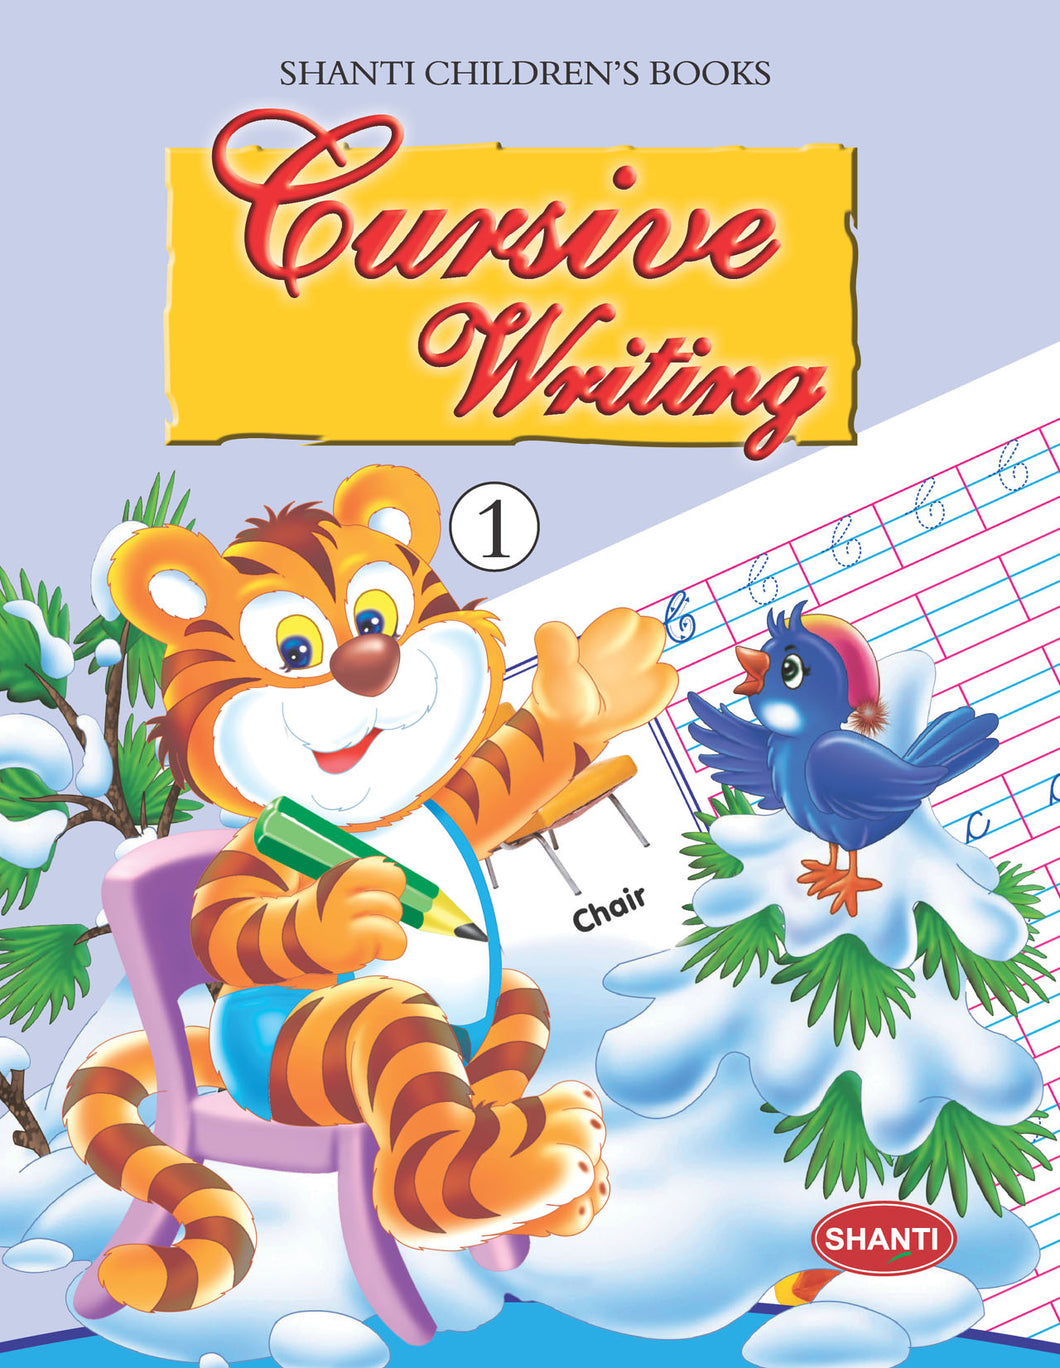 Cursive Writing Books for Kids-School Book Series - Cursive Writing-1